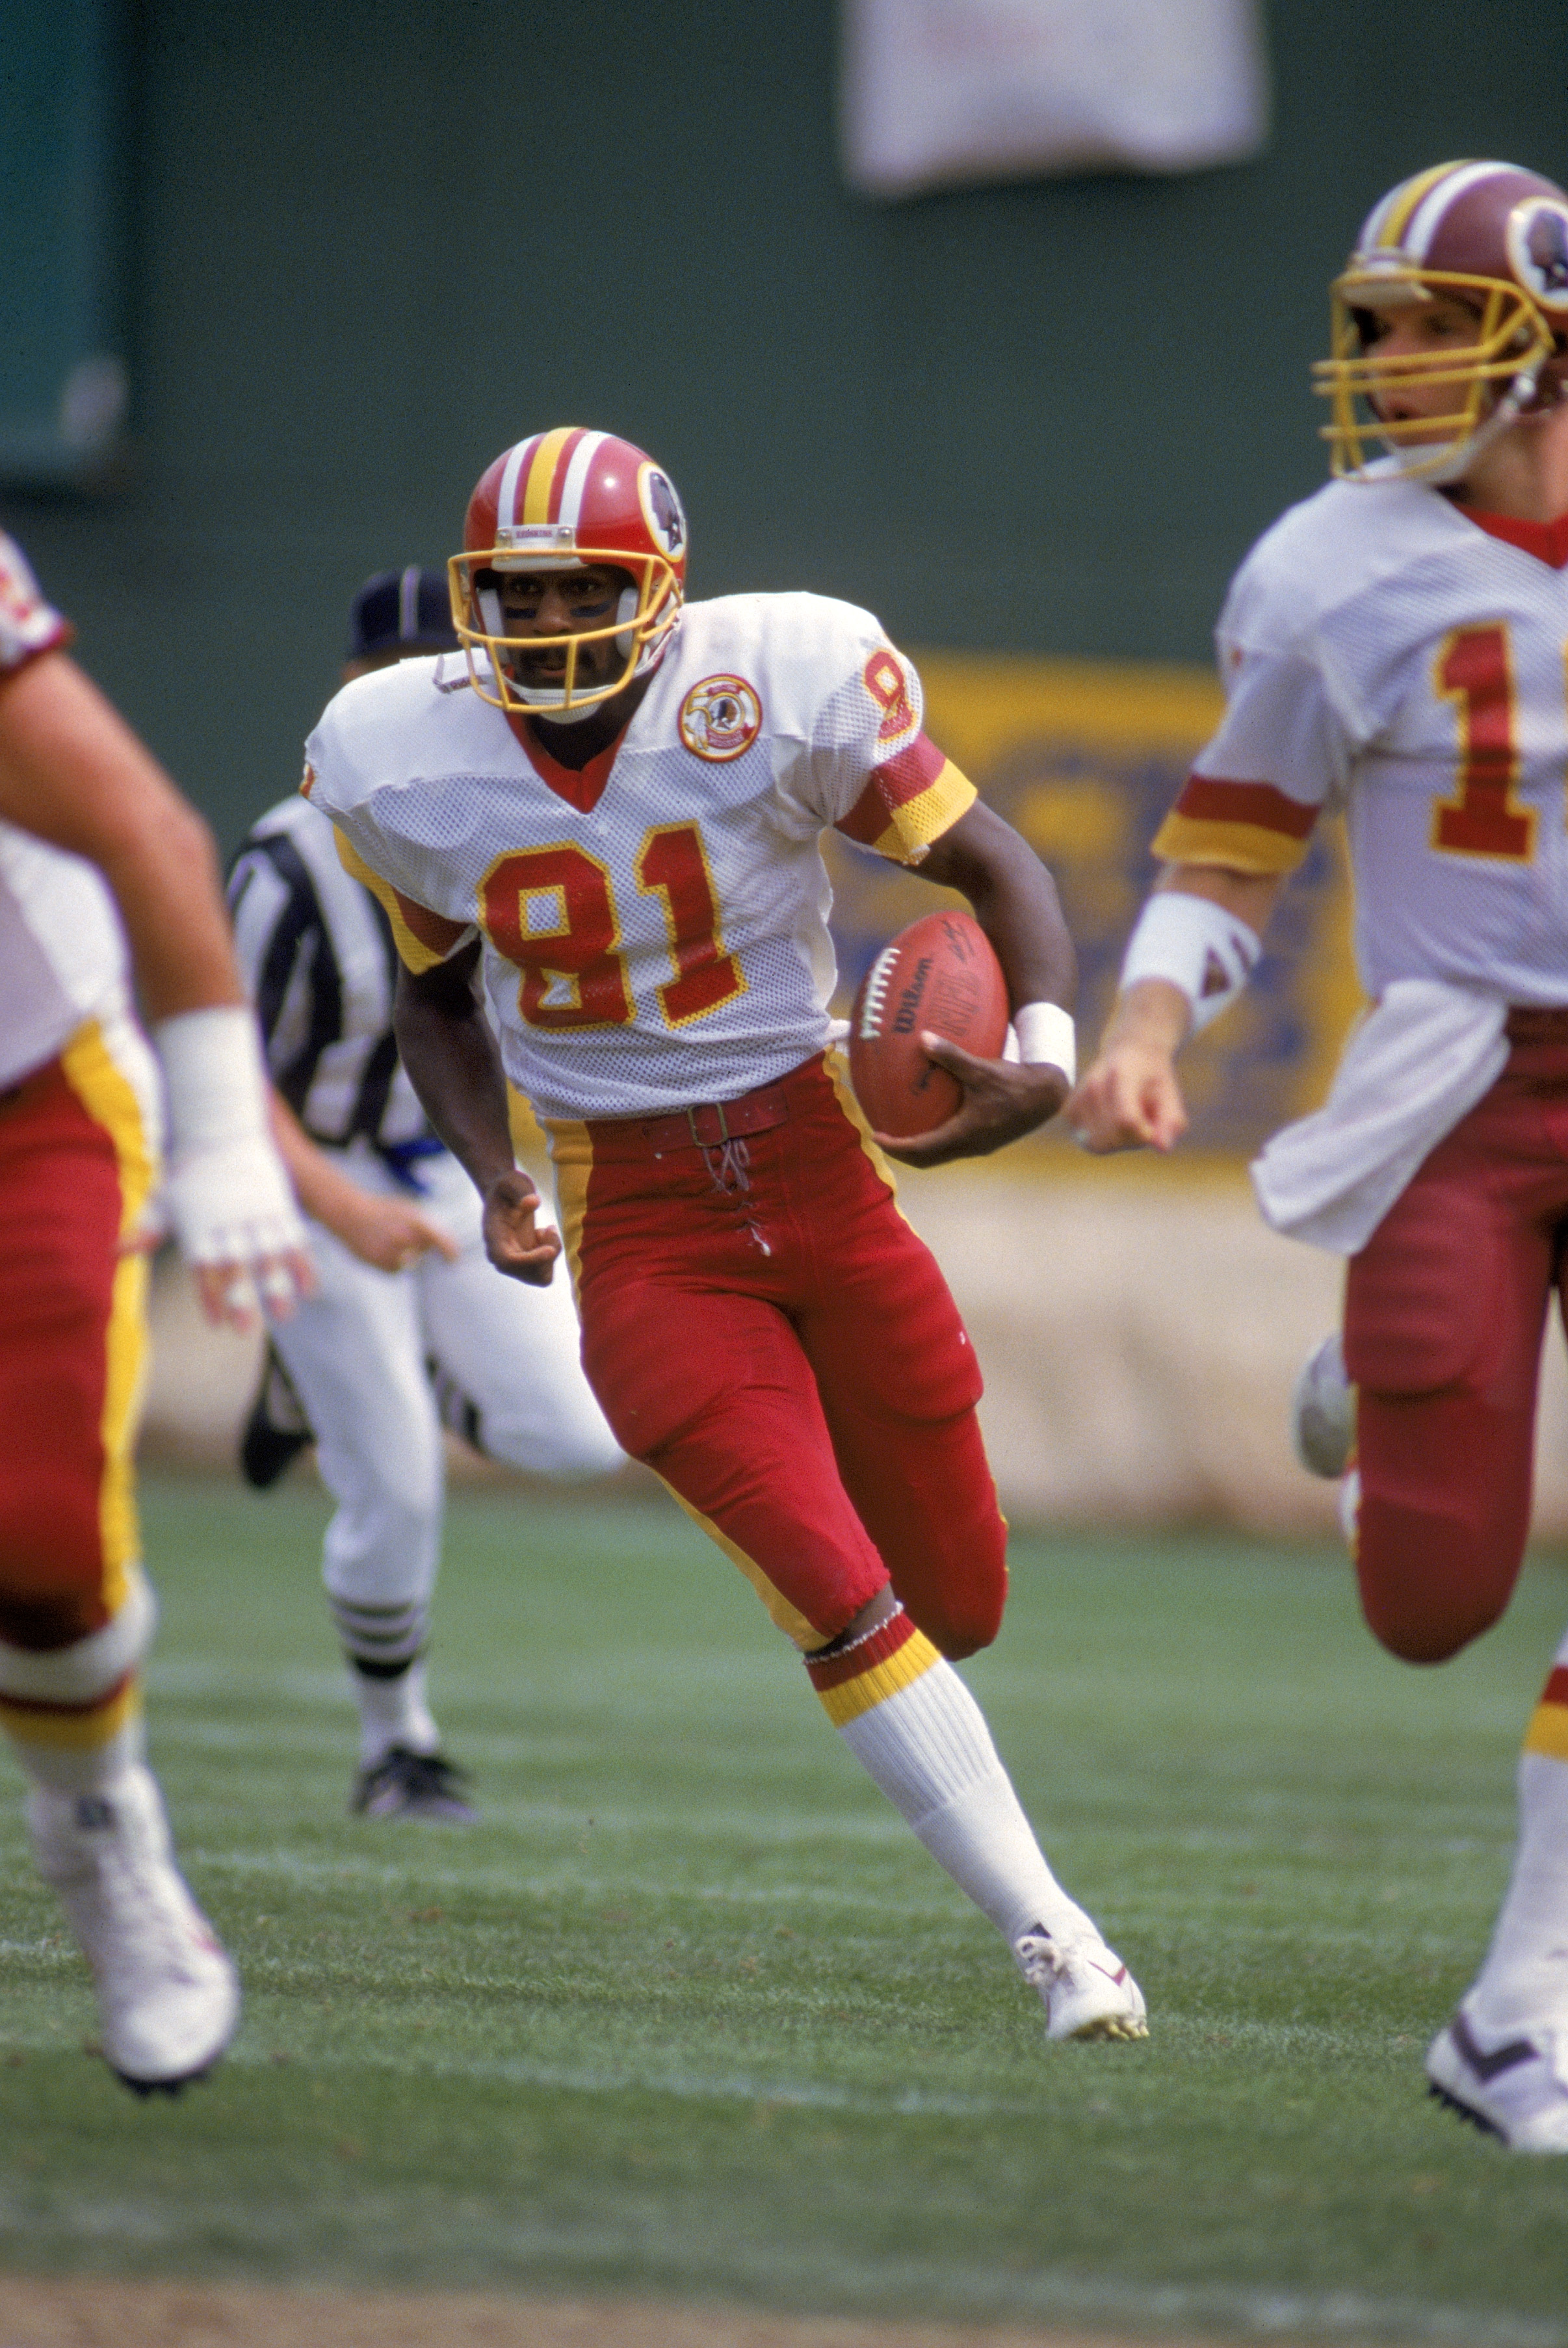 1986:  Wide receiver Art Monk #81 of the Washington Redskins runs for yards during a 1986 NFL season game.  (Photo by Stephen Dunn/Getty Images)